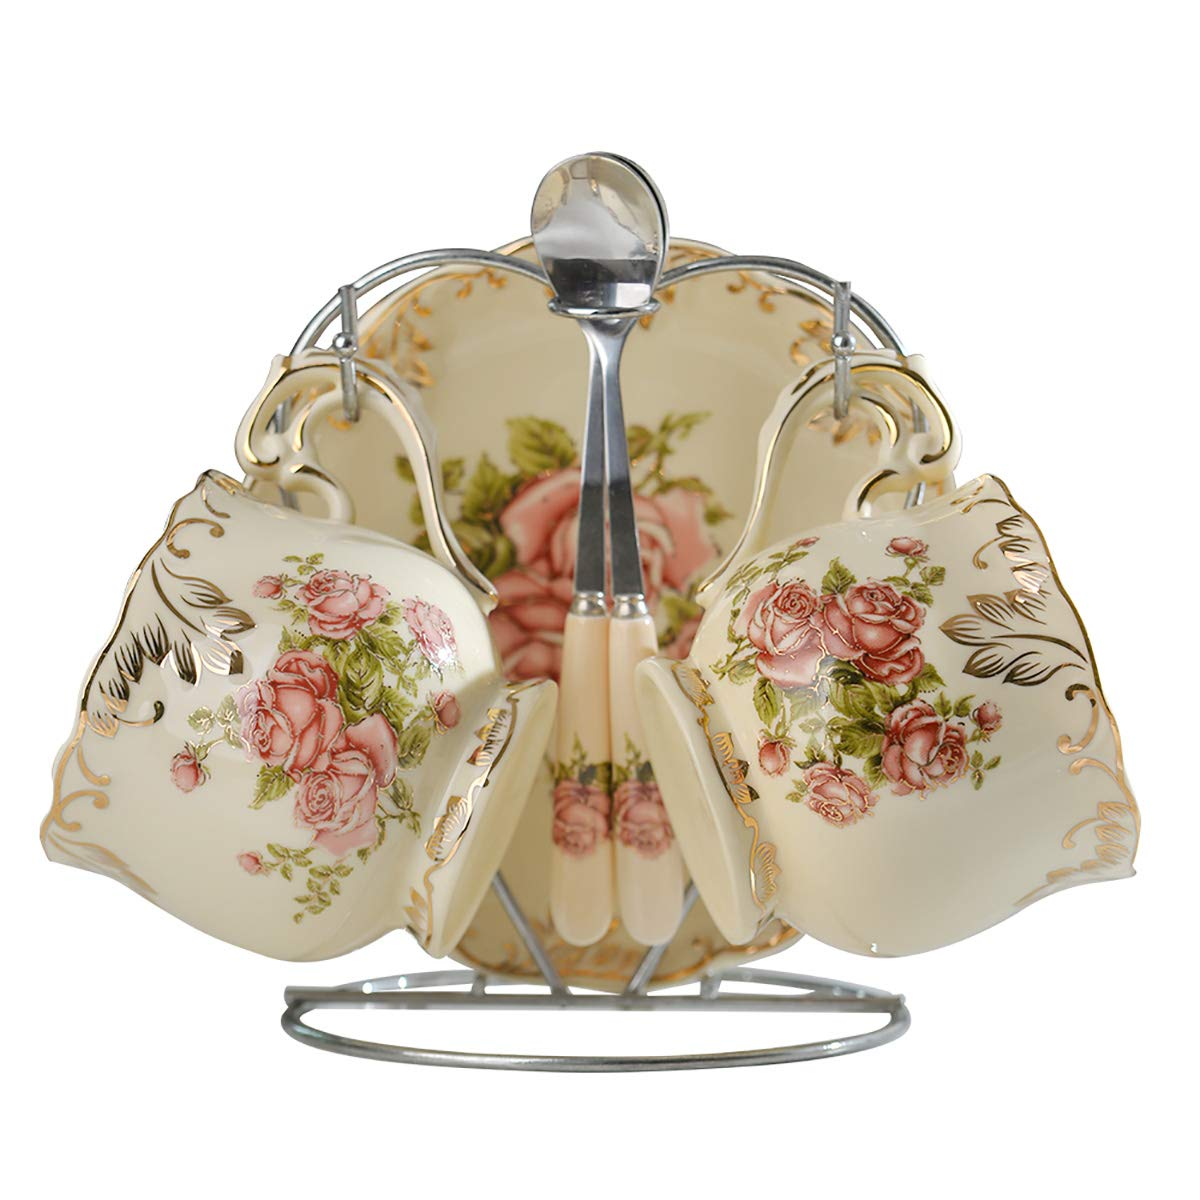 European Rose Pattern with Golden Leaf Edge Ivory Ceramic Tea Cup and Saucer with Spoon,Pack of 2 with Silver Metal Rack